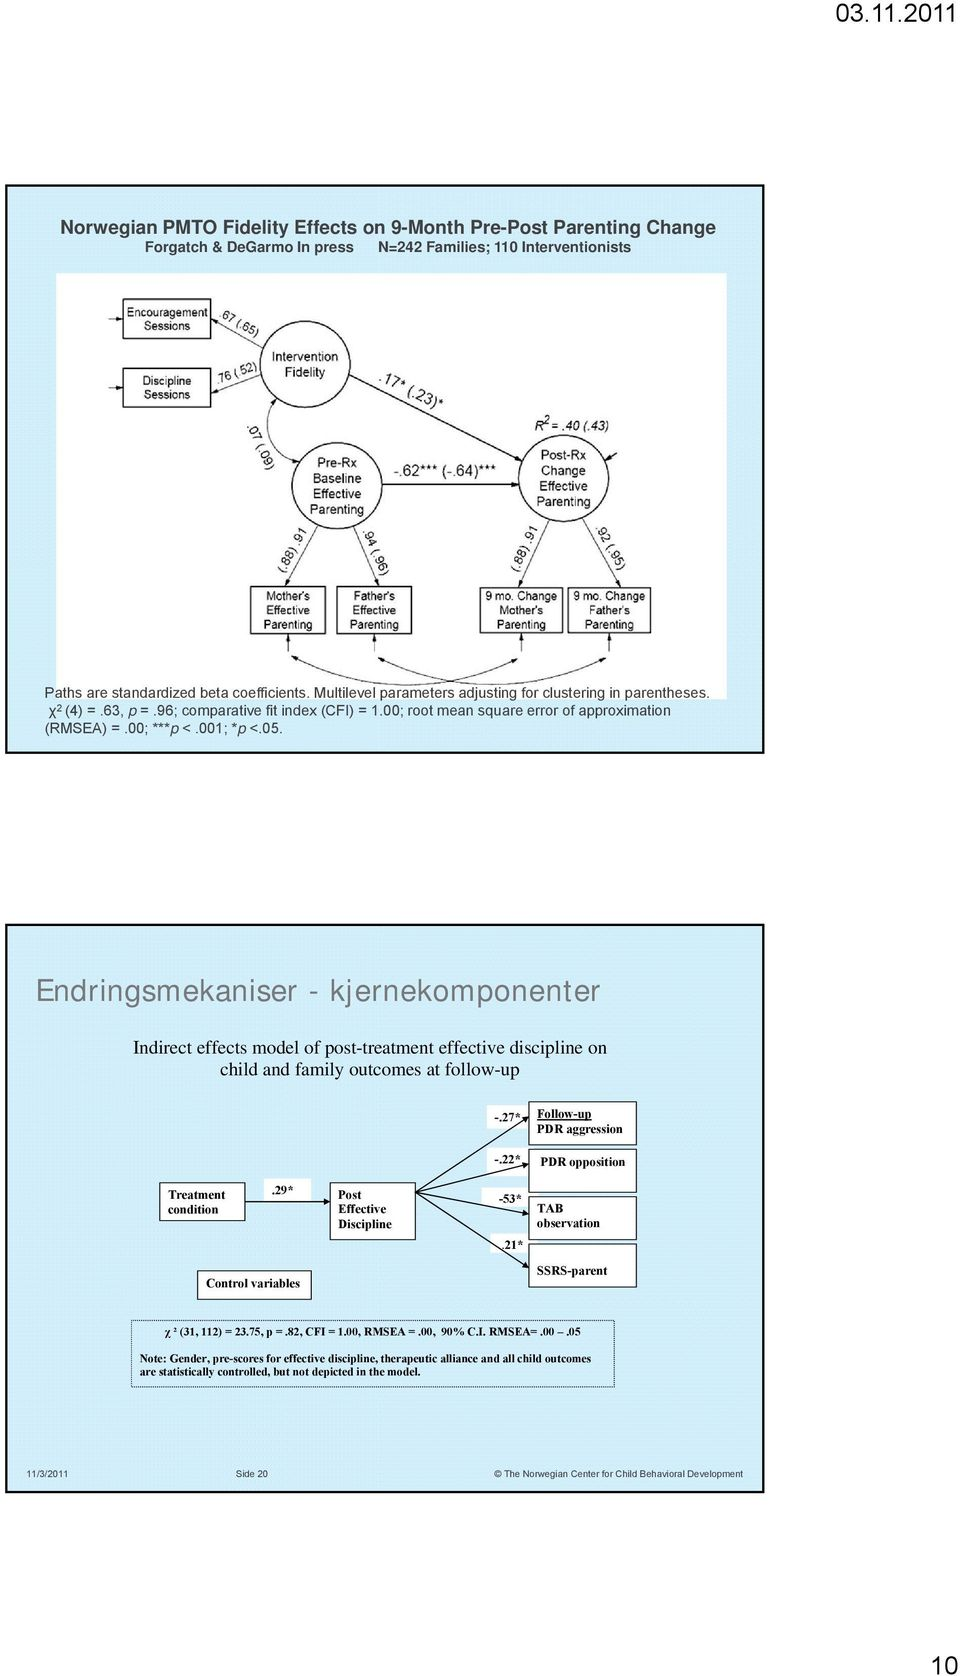 Endringsmekaniser - kjernekomponenter Indirect effects model of post-treatment effective discipline on child and family outcomes at follow-up -.27* Follow-up PDR aggression -.